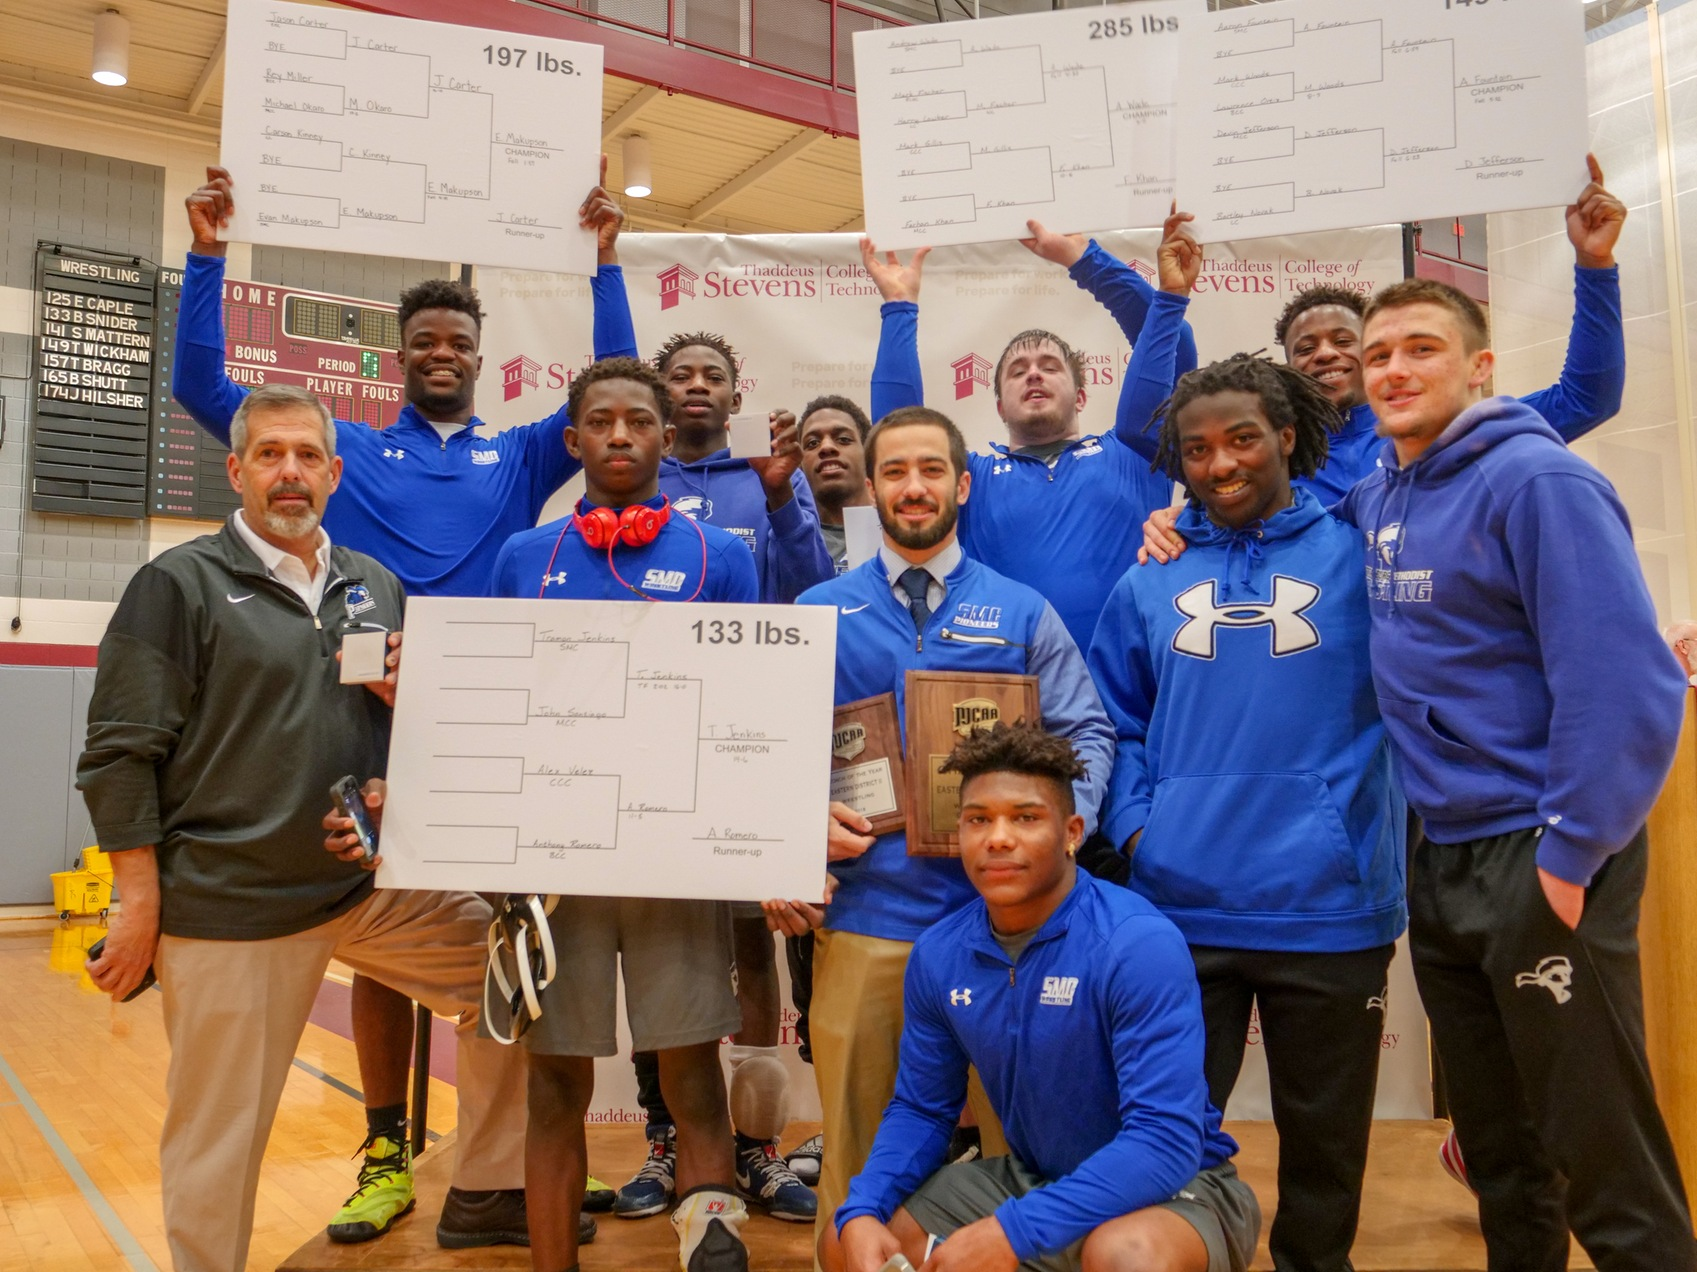 Wrestling Wins Eastern District II Tournament, Crowns 5 Champions & Coach of the Year